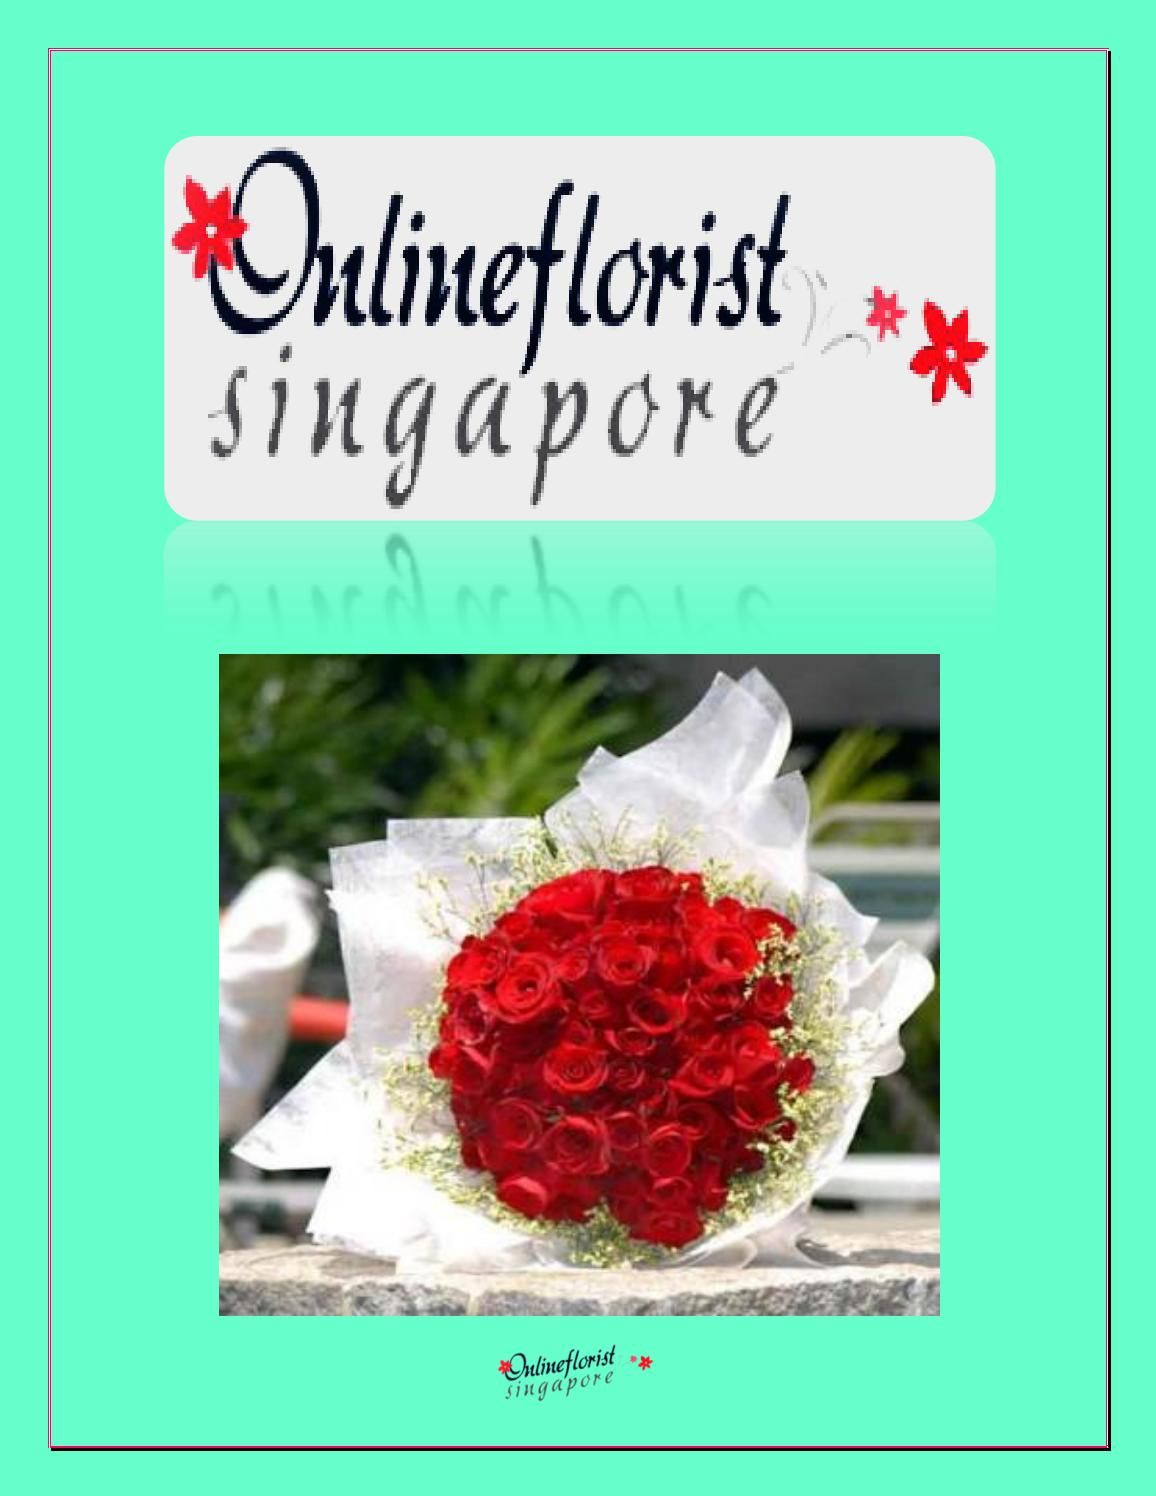 Online Florist Singapore is one of the best flower shops